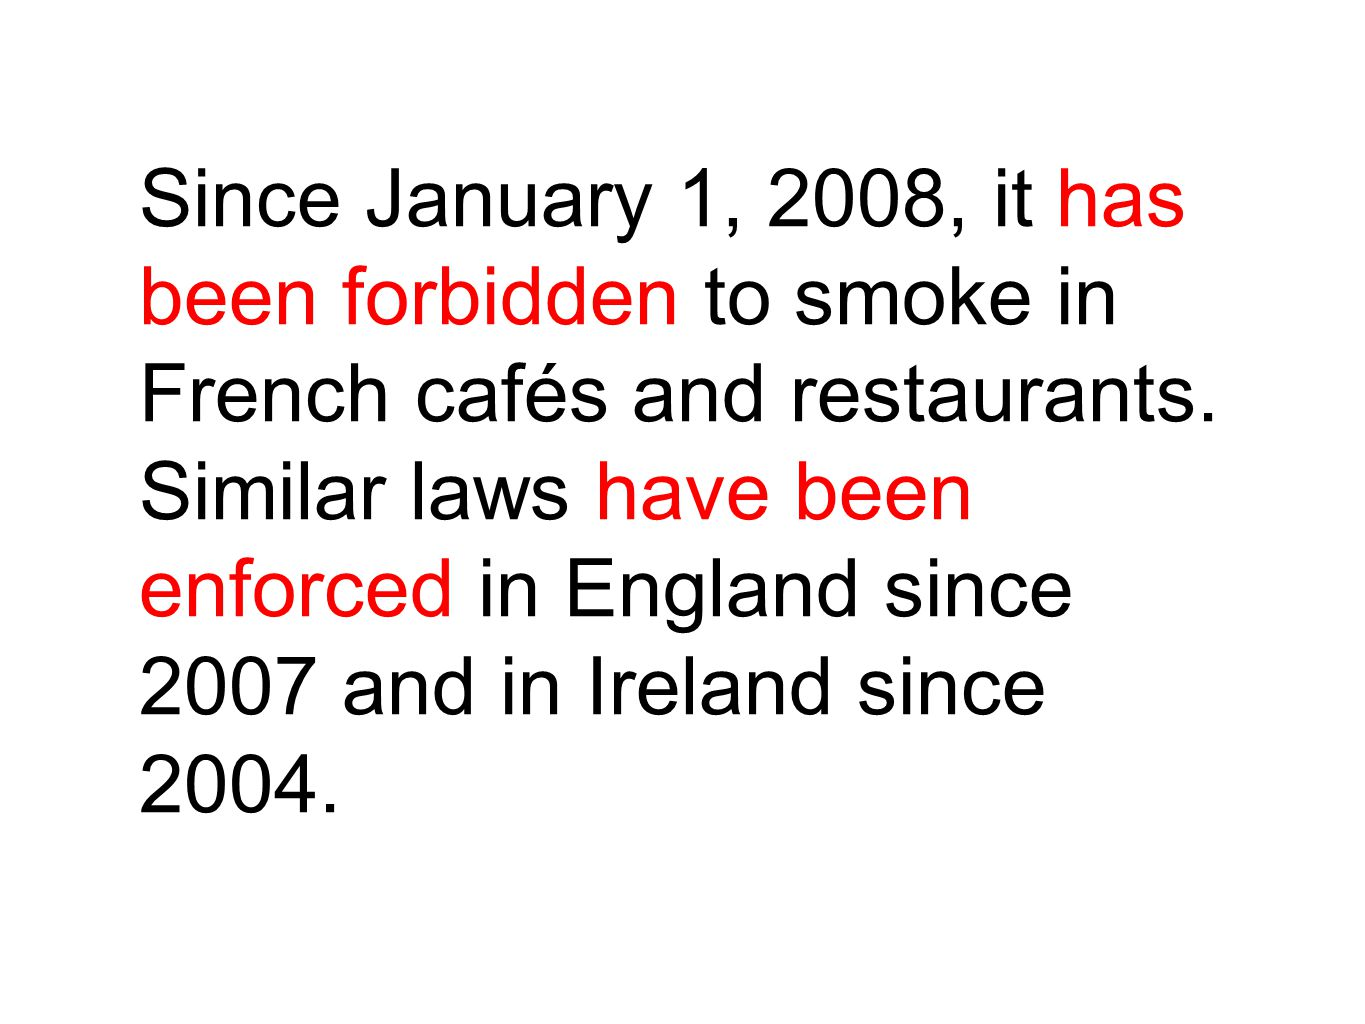 Since January 1, 2008, it has been forbidden to smoke in French cafés and restaurants.